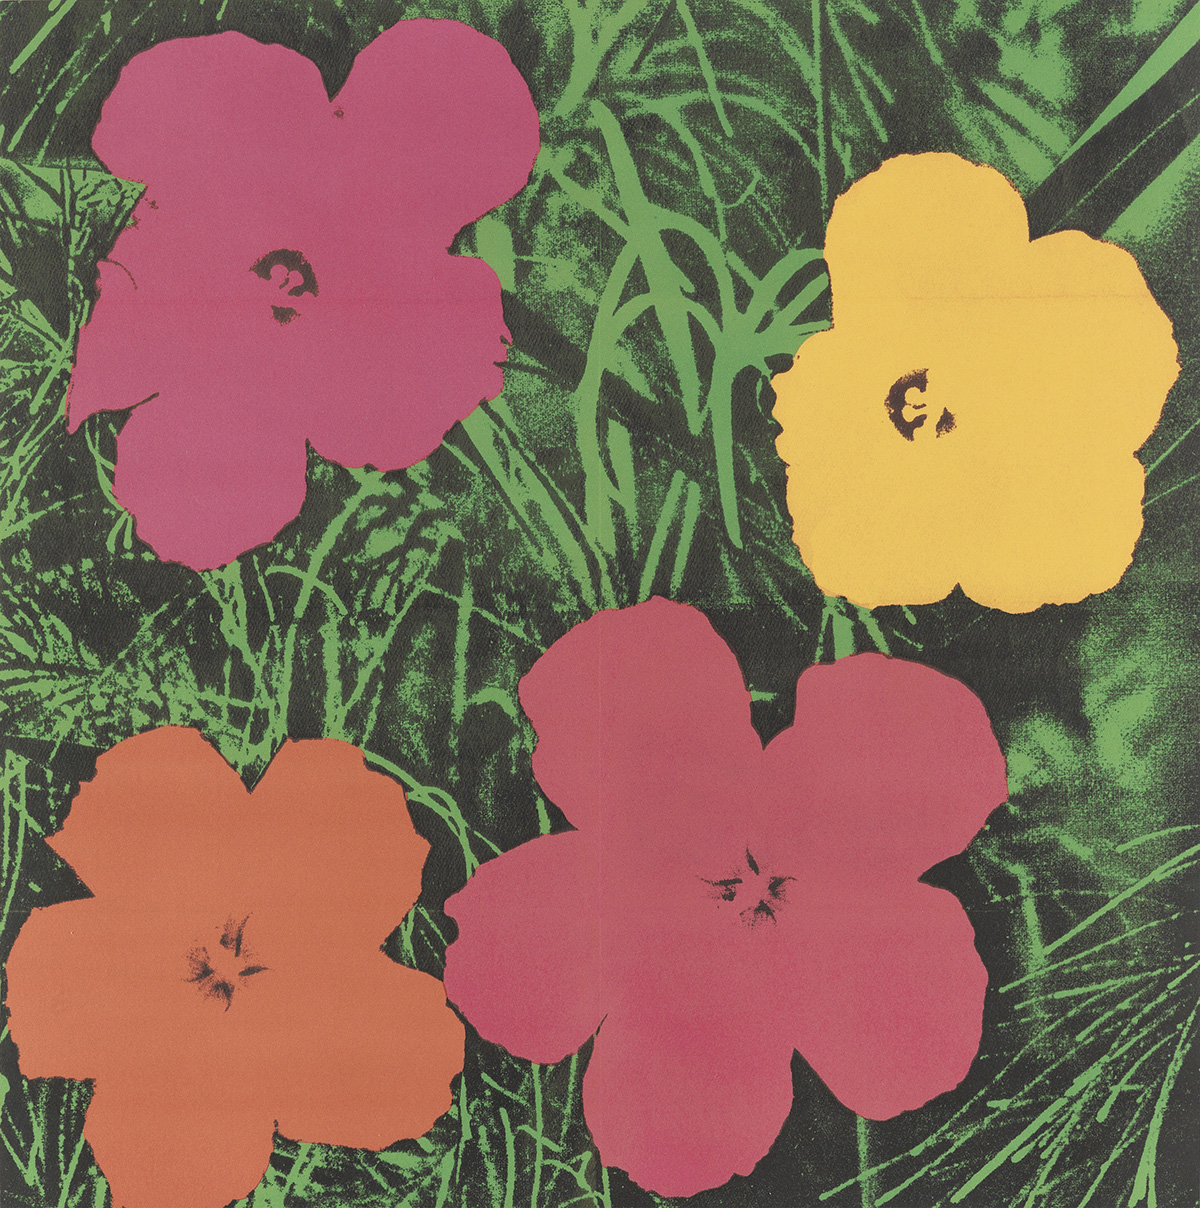 ANDY WARHOL (1928-1987). [EXHIBITION MAILERS.] Two invitations. 1964 & 1965. Sizes vary, each approximately 23x23 inches, 54x54 cm.